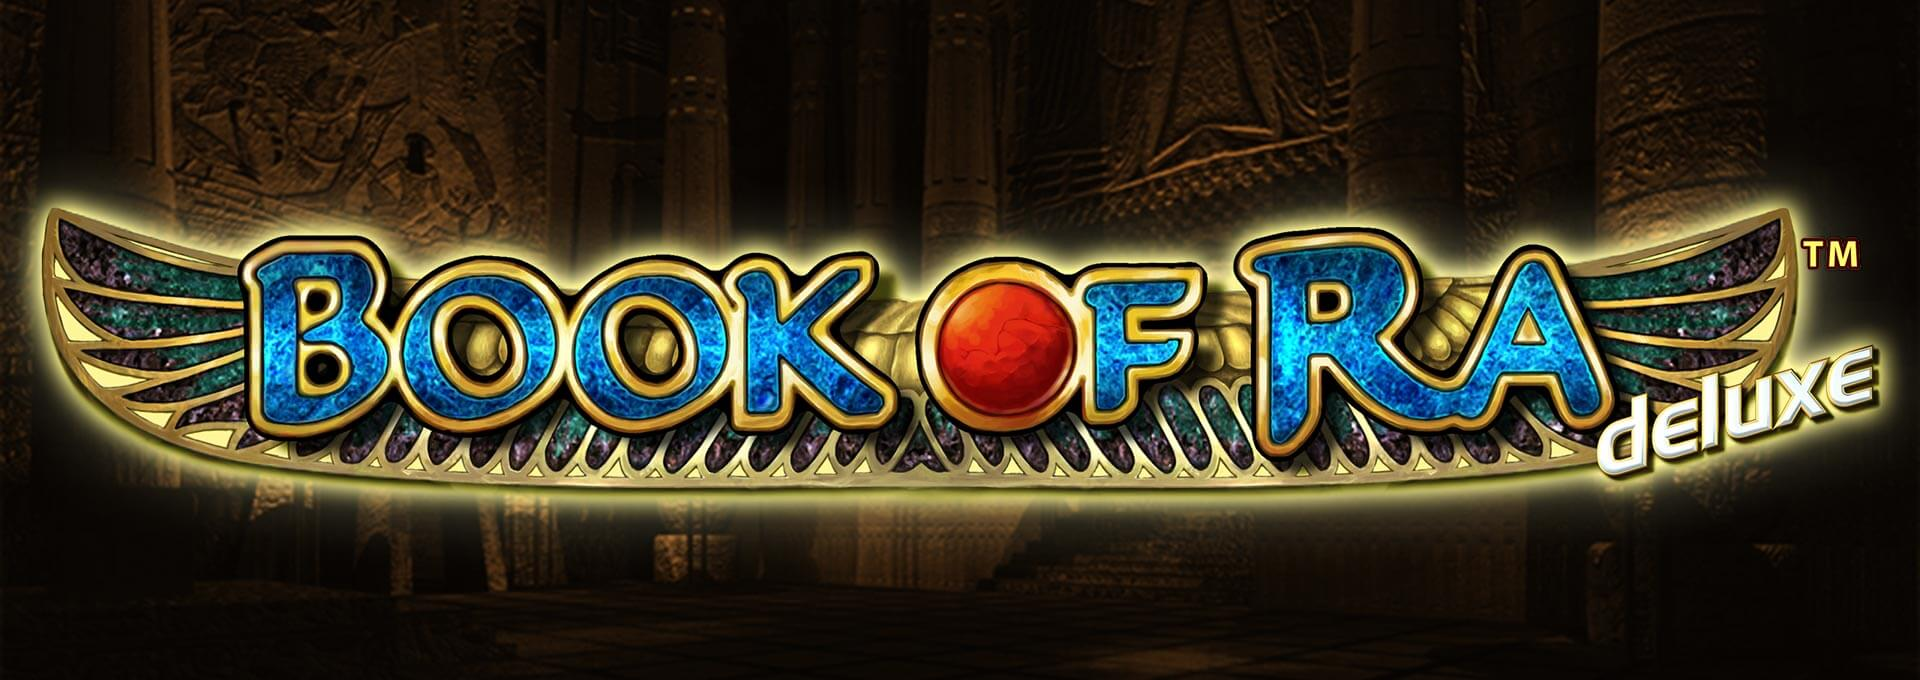 casino play online book of ra deluxe online